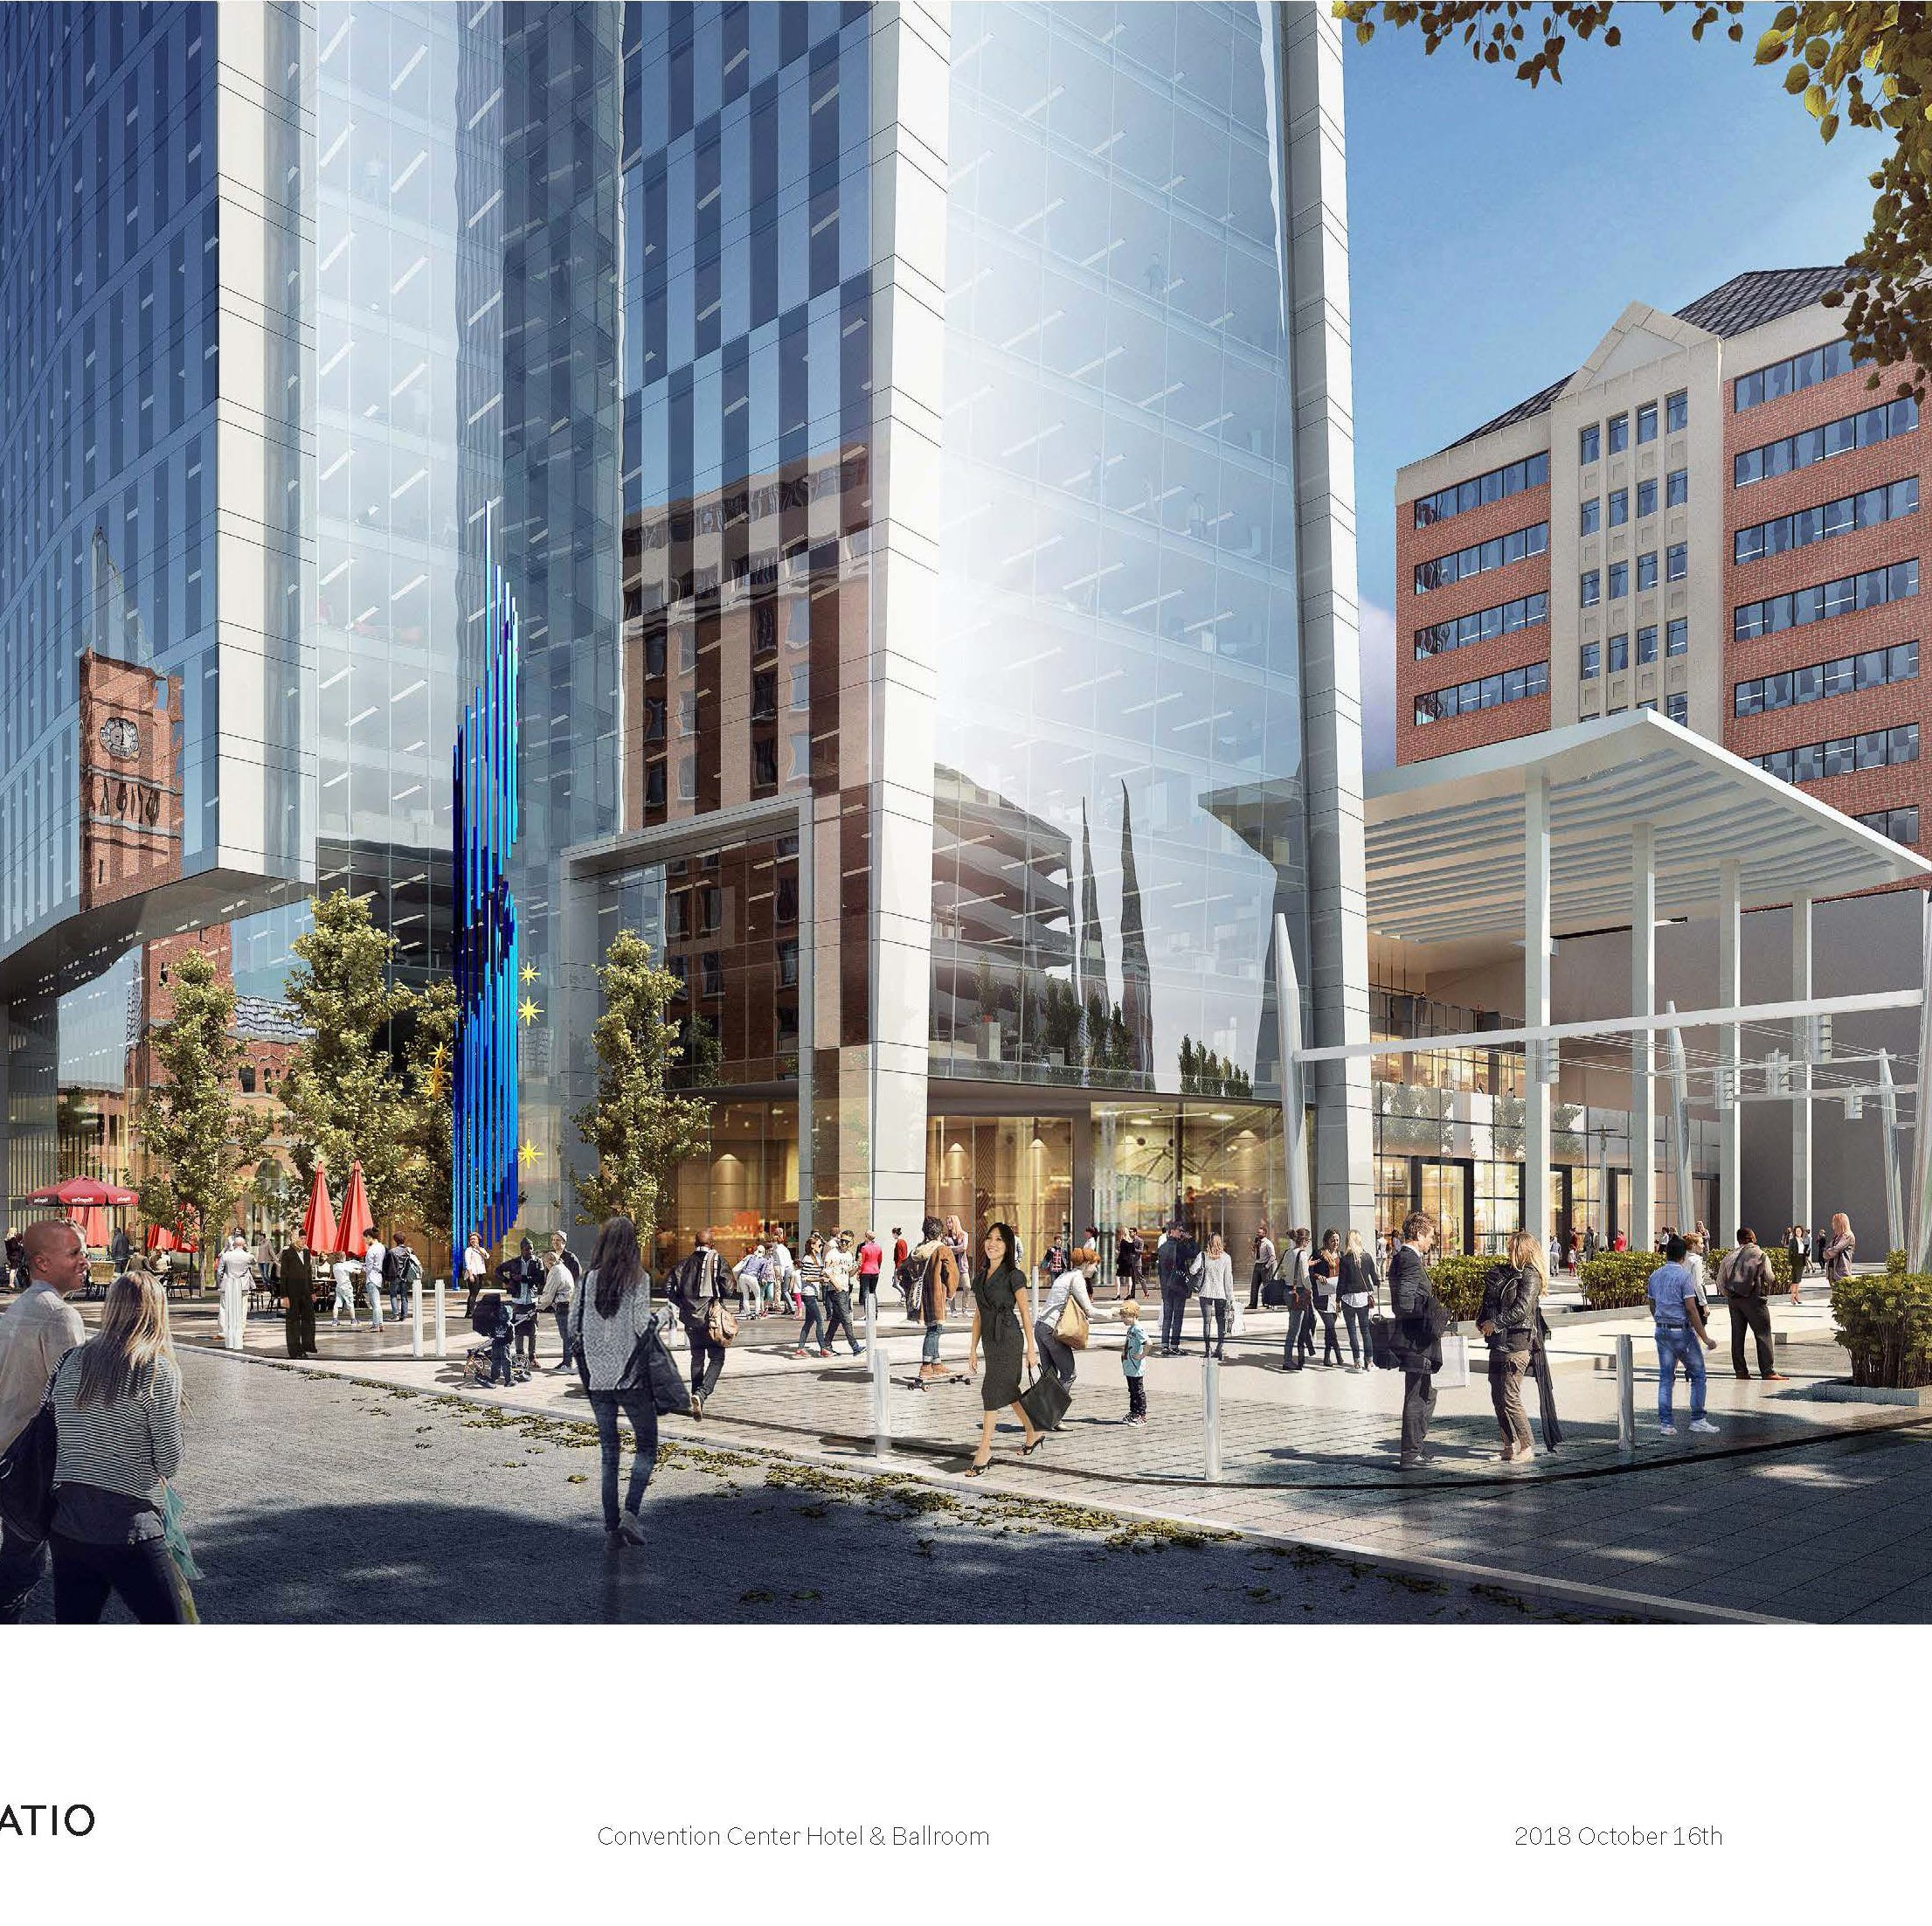 Swarens: 'Iconic project' would bring hotels, expanded convention center to Indianapolis